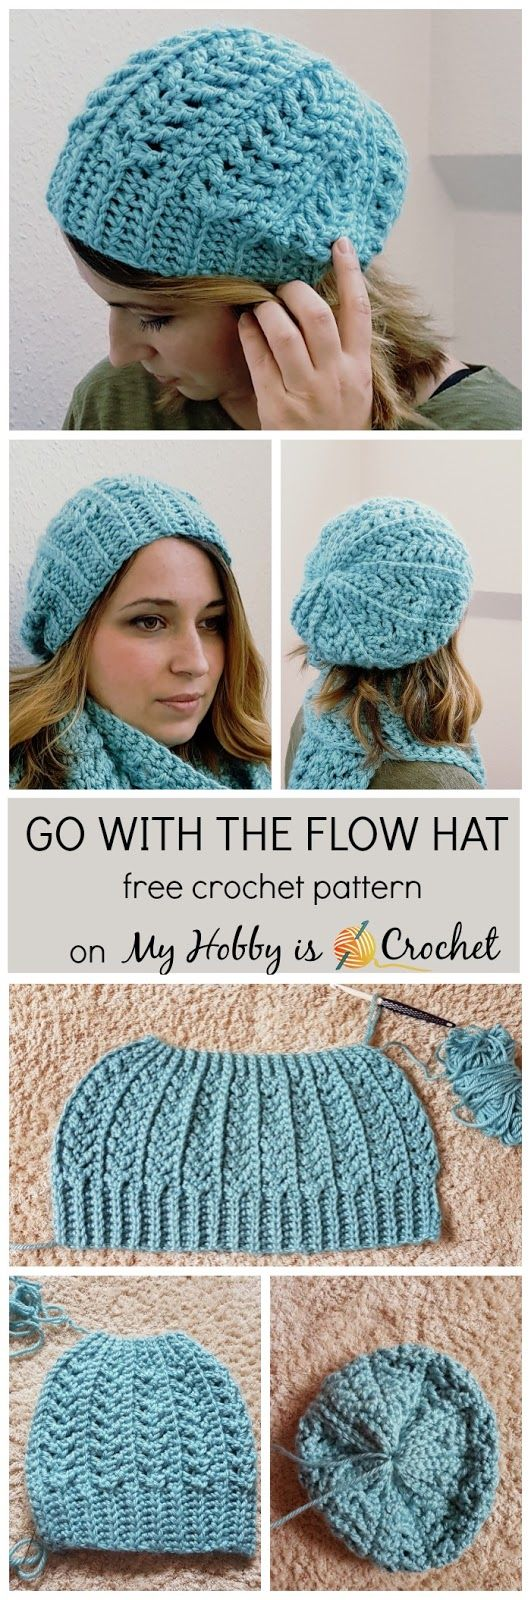 free crochet hat patterns go with the flow hat - free crochet pattern on myhobbyiscrochet.com hqypbgi